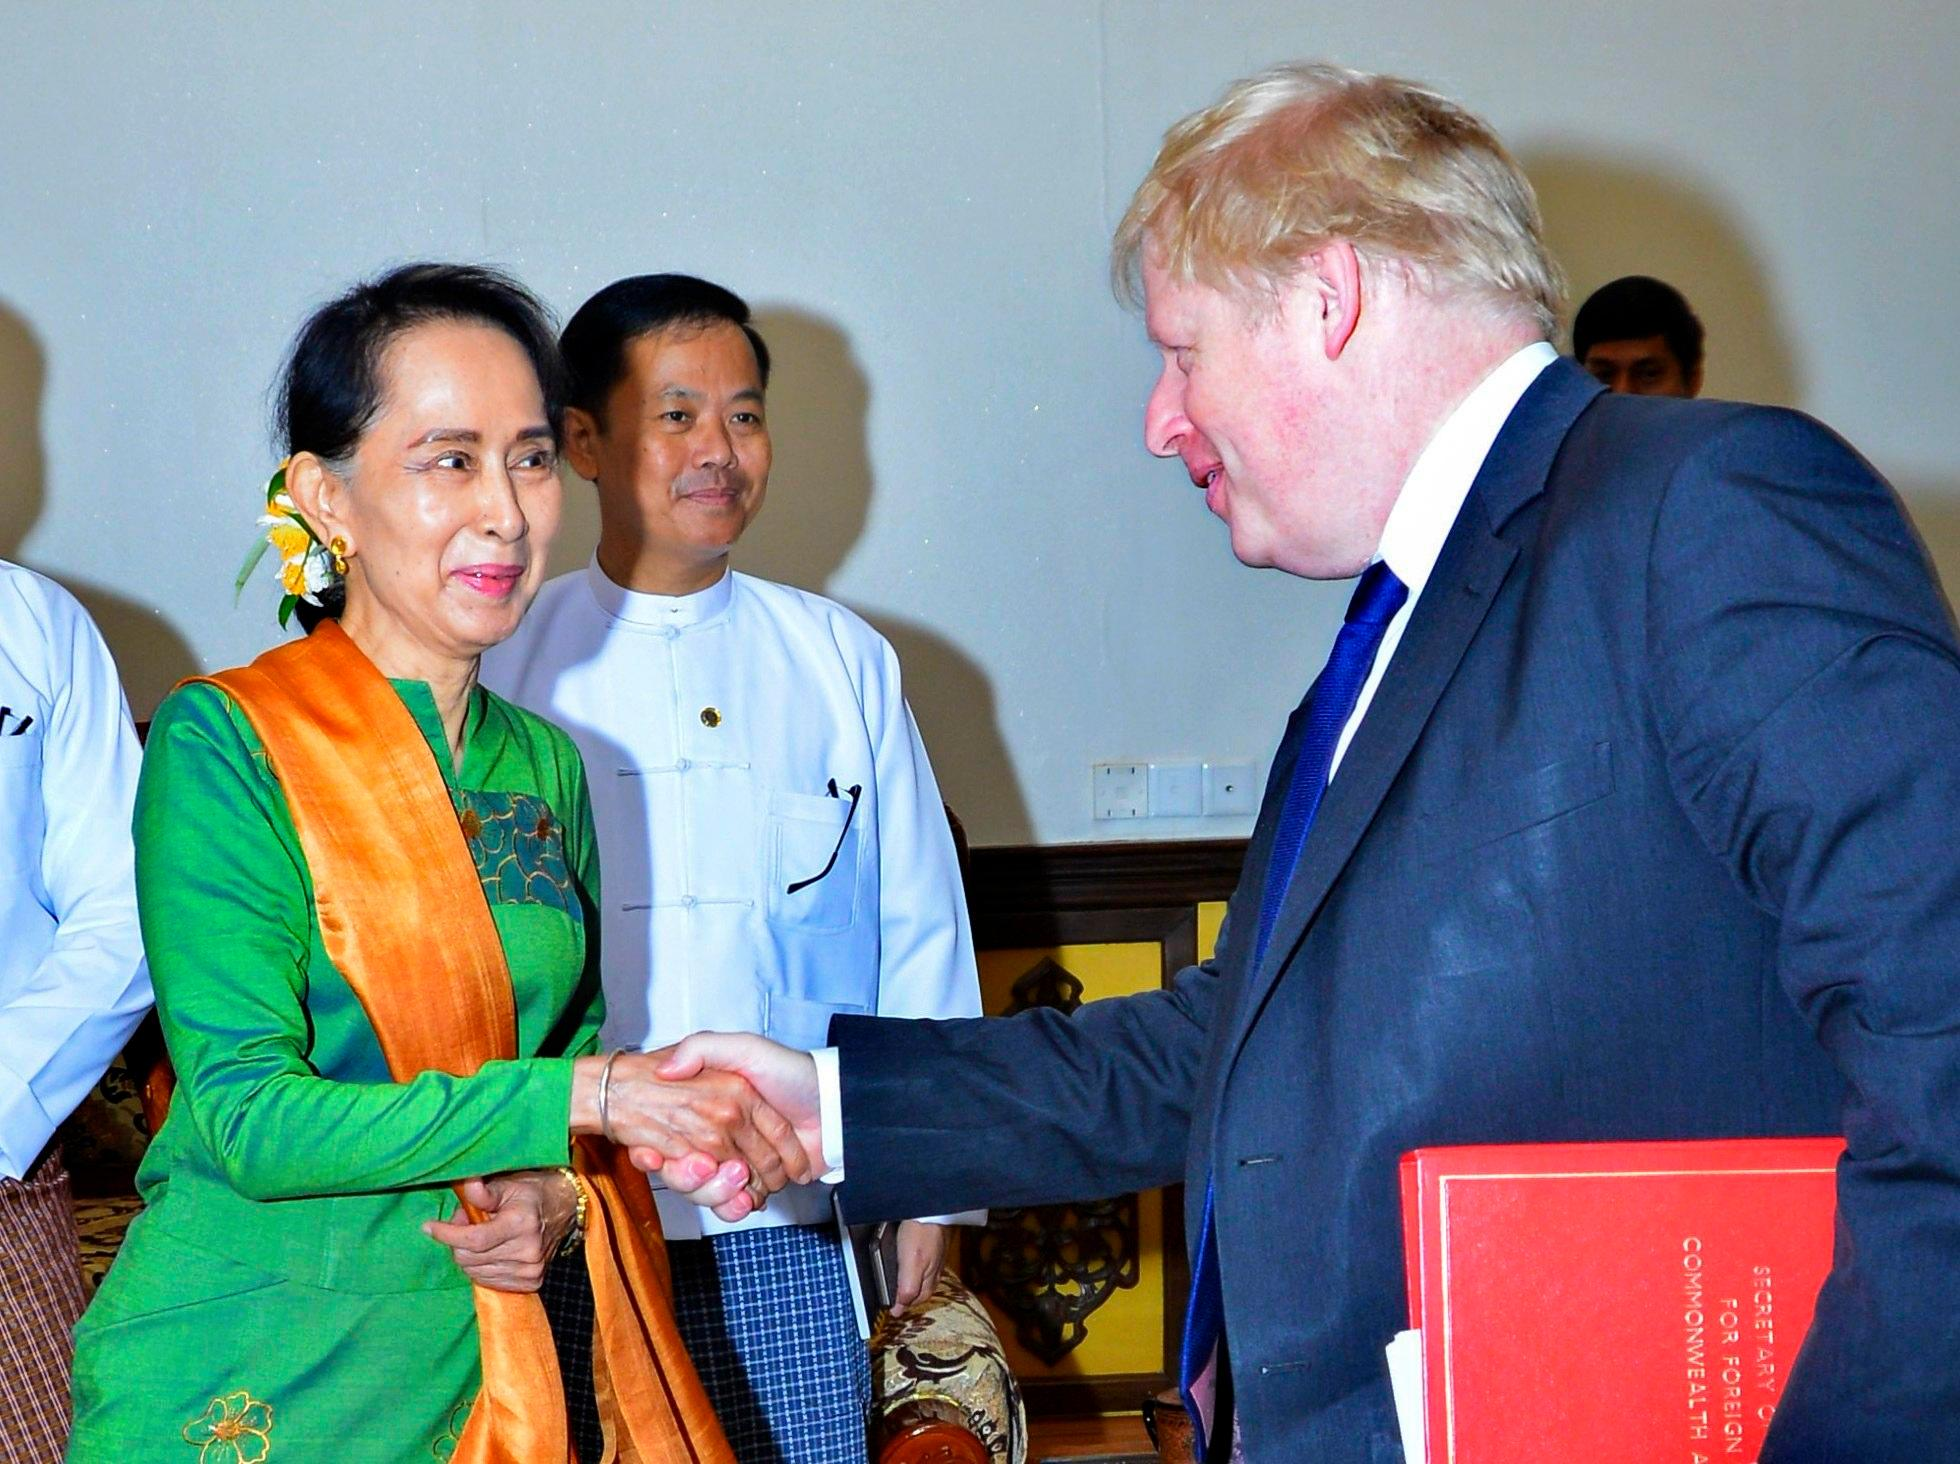 Boris Johnson pushes Aung San Suu Kyi to create safe space for Rohingya refugees and hold investigation into human rights violations in Burma